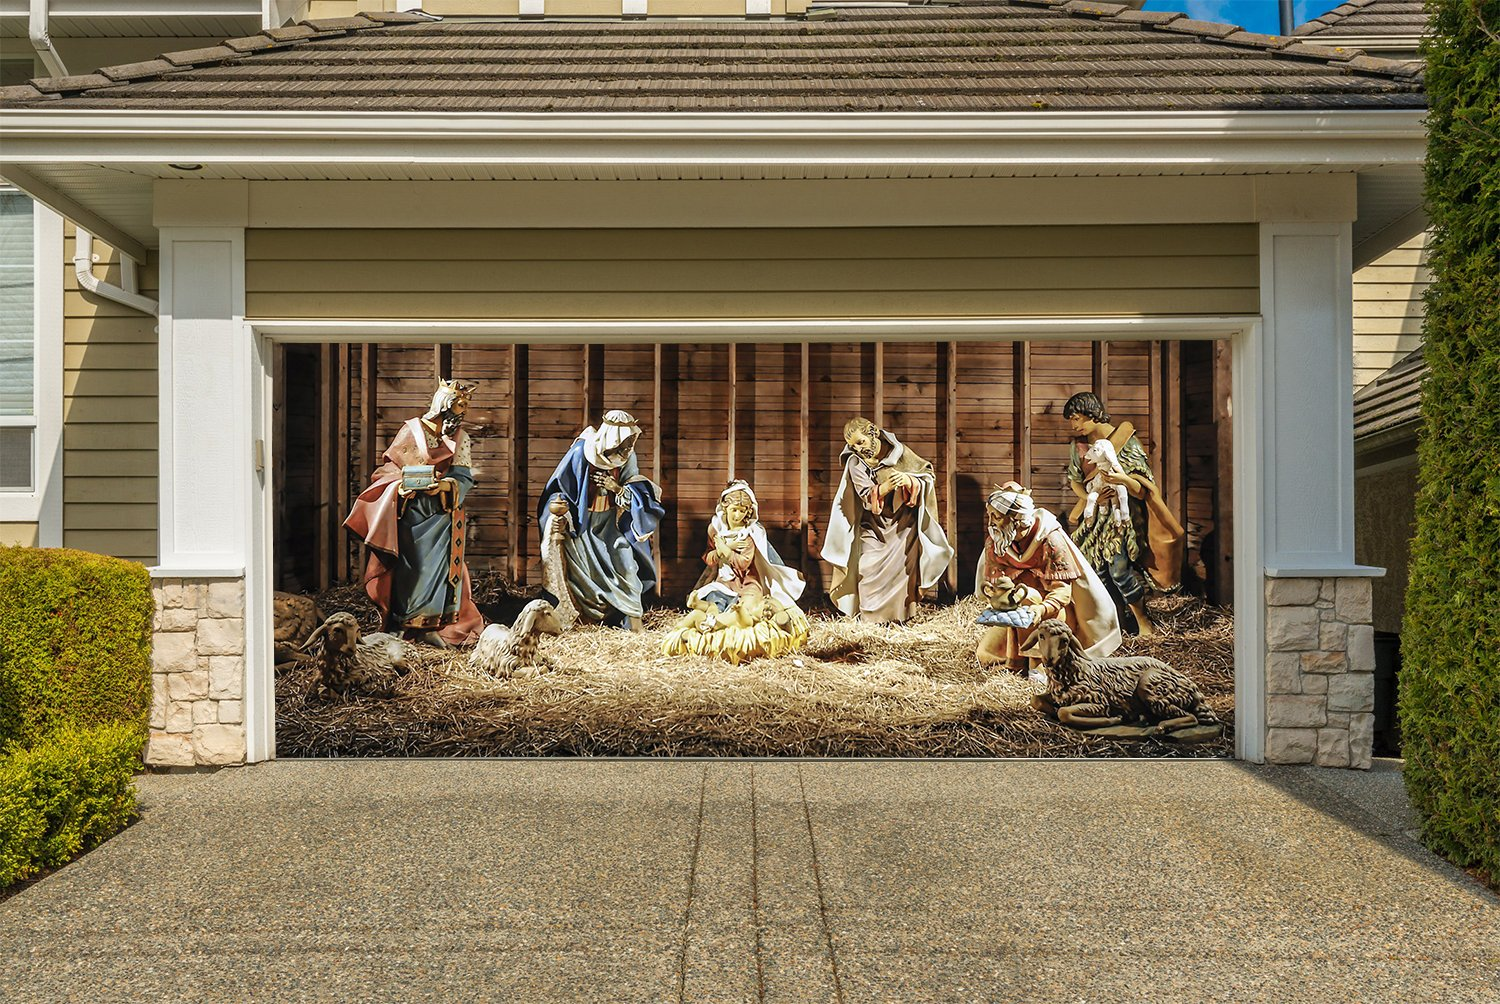 Nativity Scene Banners for 2 Car Garage Door Covers Outdoor 3D Effect Christmas Full Color House Billboard Garage Door Holiday Christmas Jesus Holy Night Decor Murals size 82x188 inches DAV217